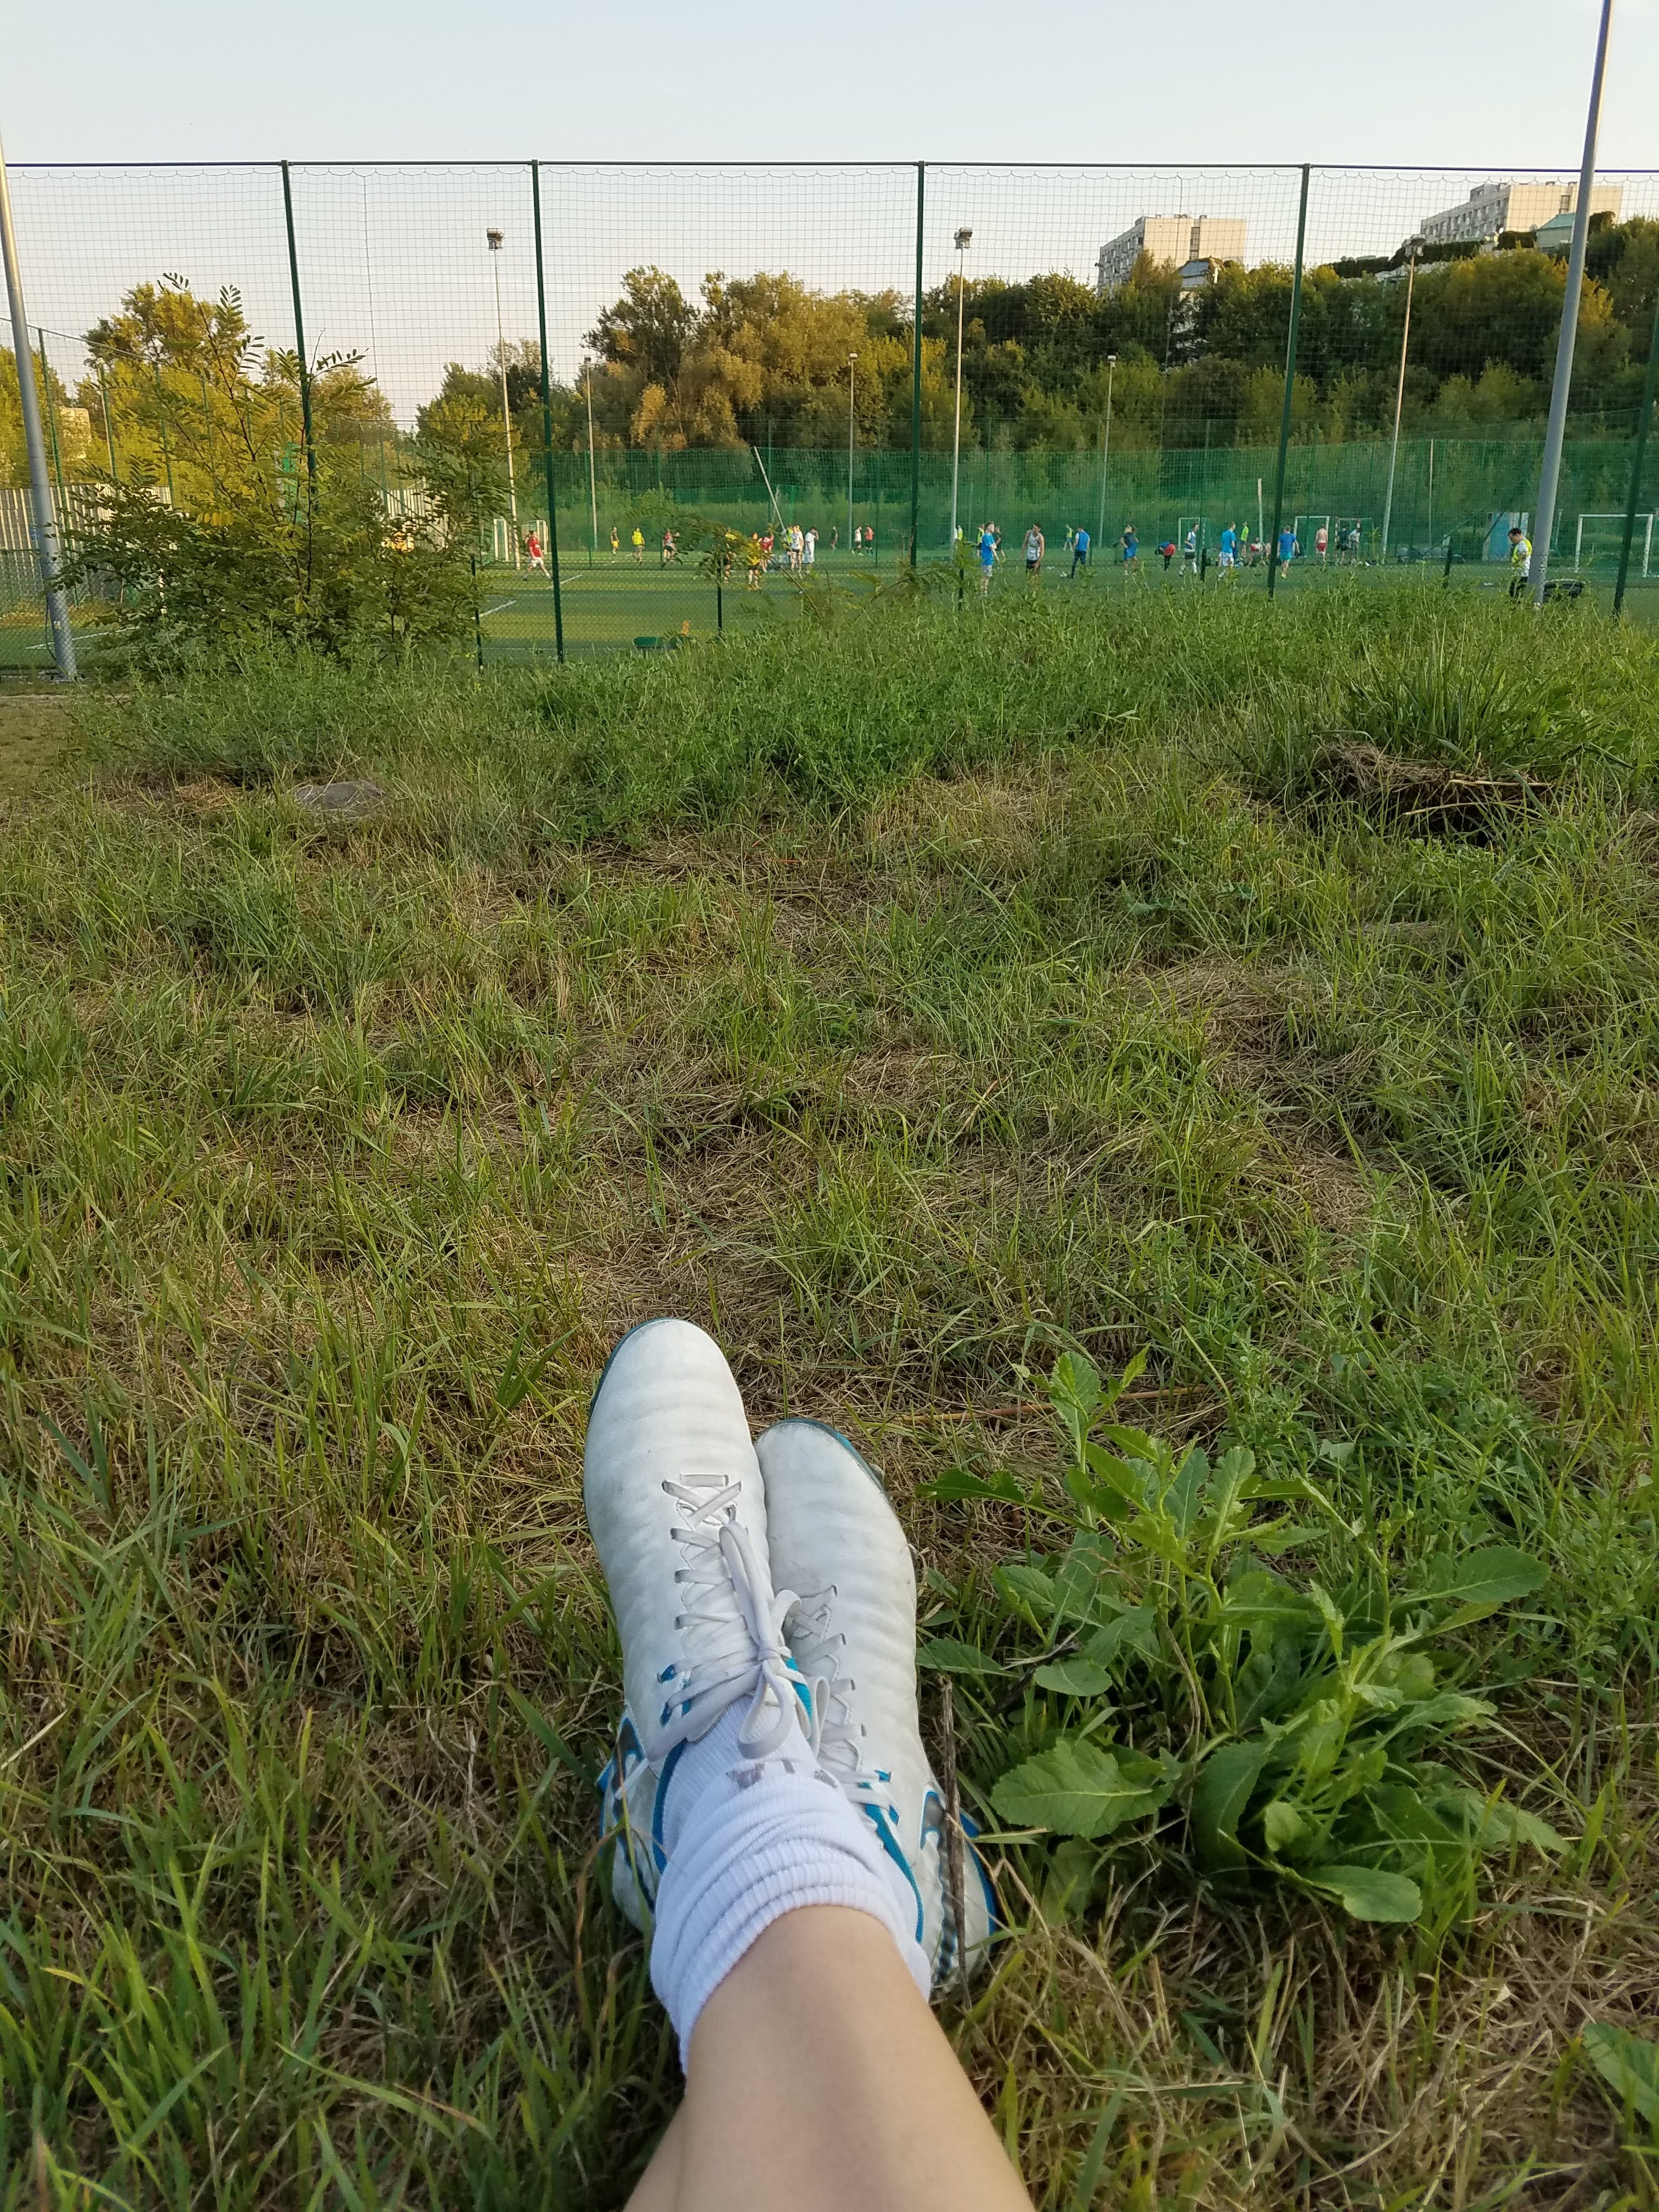 soccer cleats with field in background